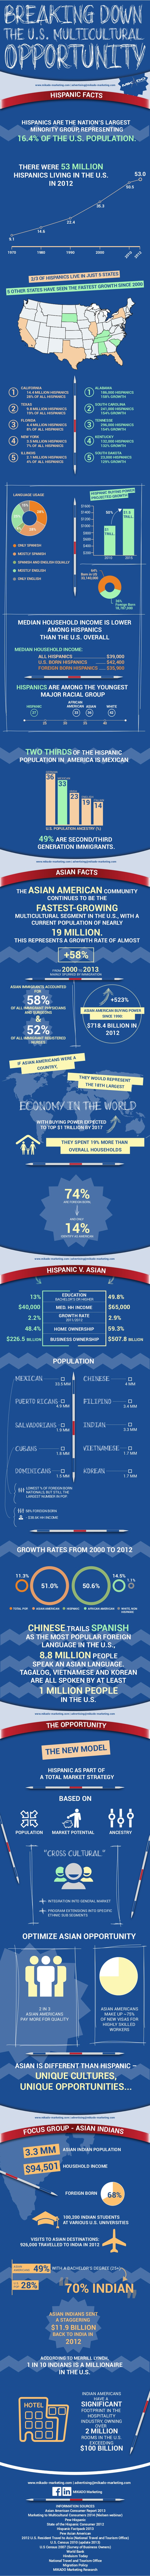 Asian Americans are the highest-income, best-educated and fastest-growing racial group in the U.S, with Asians now making up the largest share of recent immigrants! Interesting facts about a changing America!